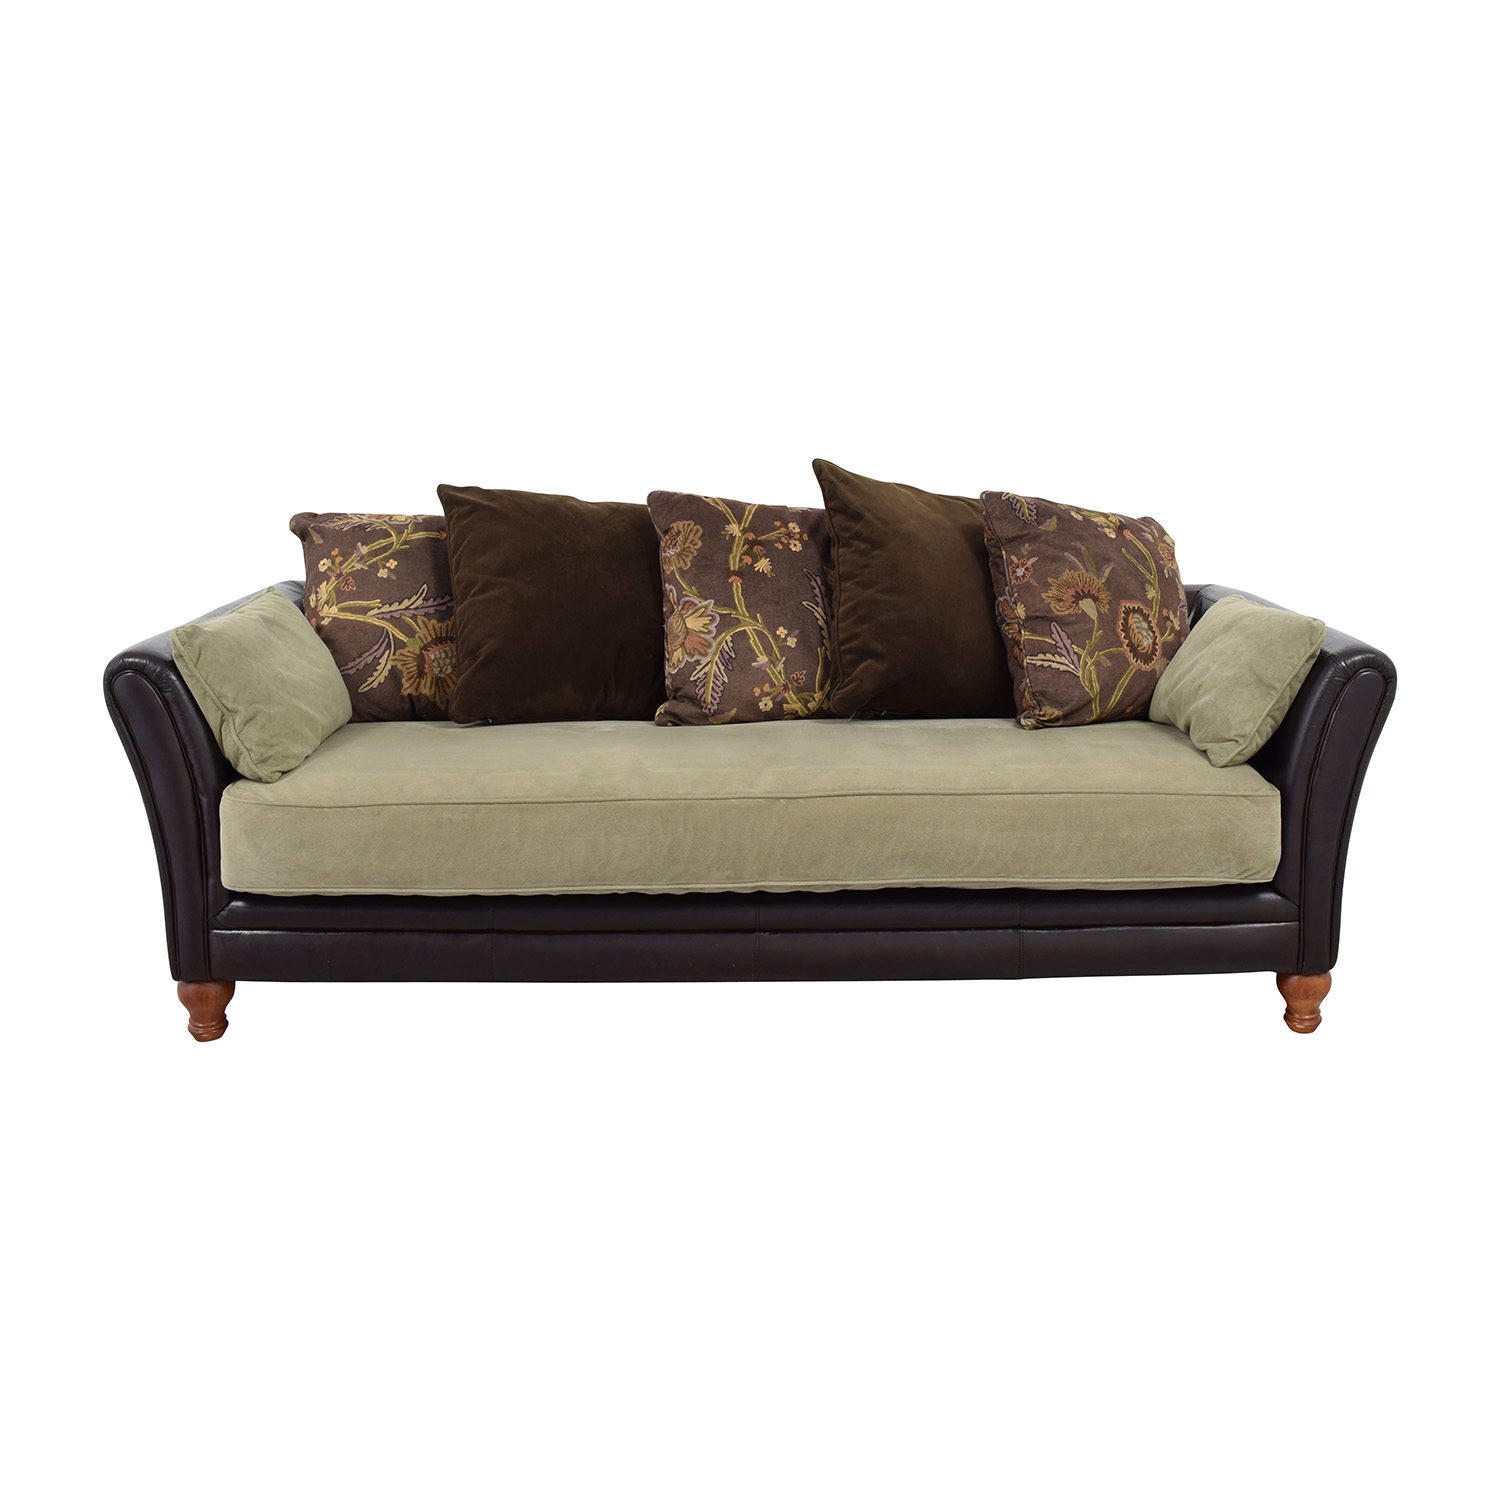 feather filled sofas second hand orange county 79 off restoration hardware